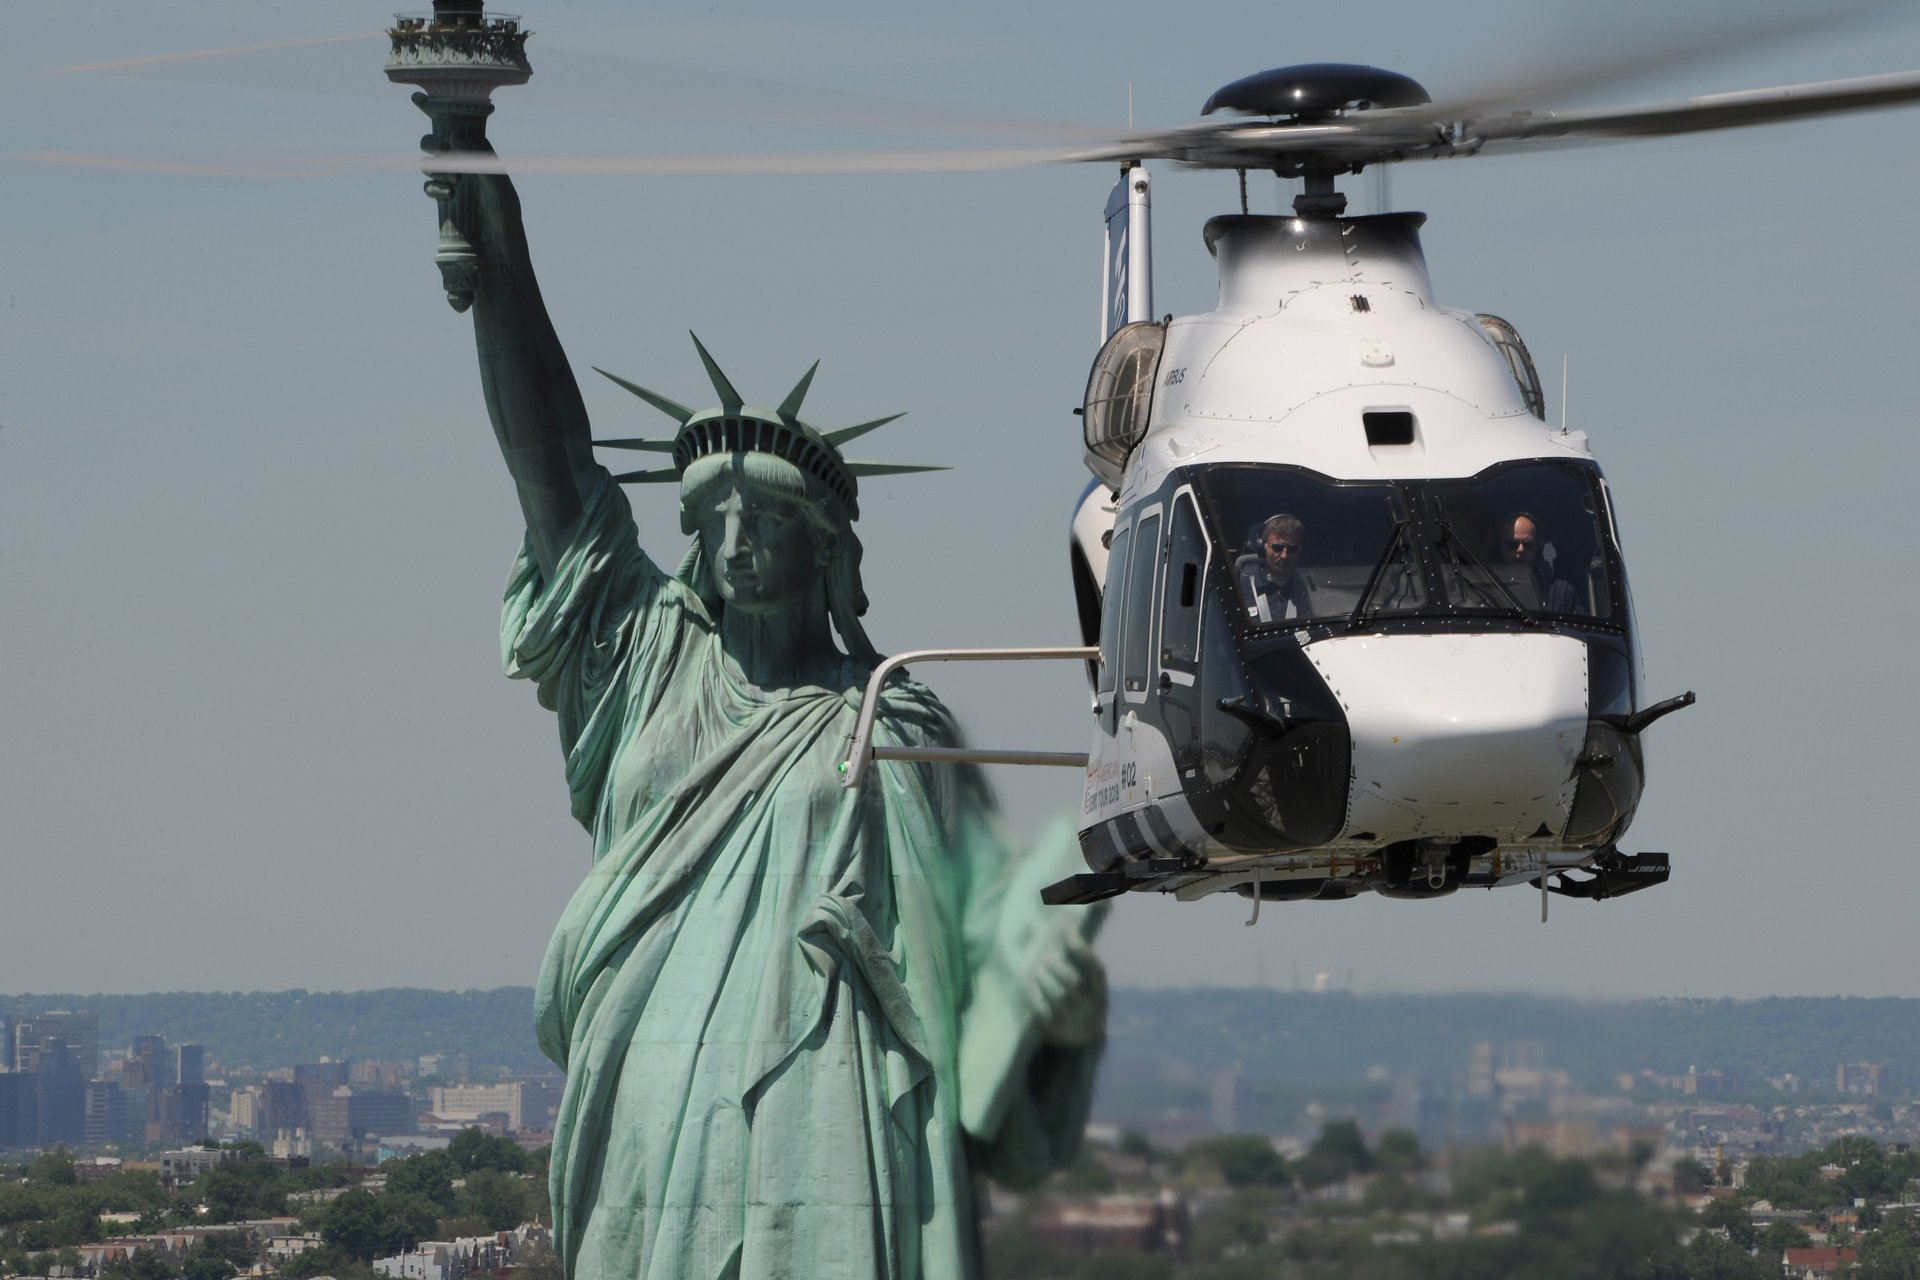 The H160 flies by Lady Liberty on its New York City sightseeing trip before heading to Trenton, New Jersey to perform demo flights as part of its North American Demo Tour in May 2018.